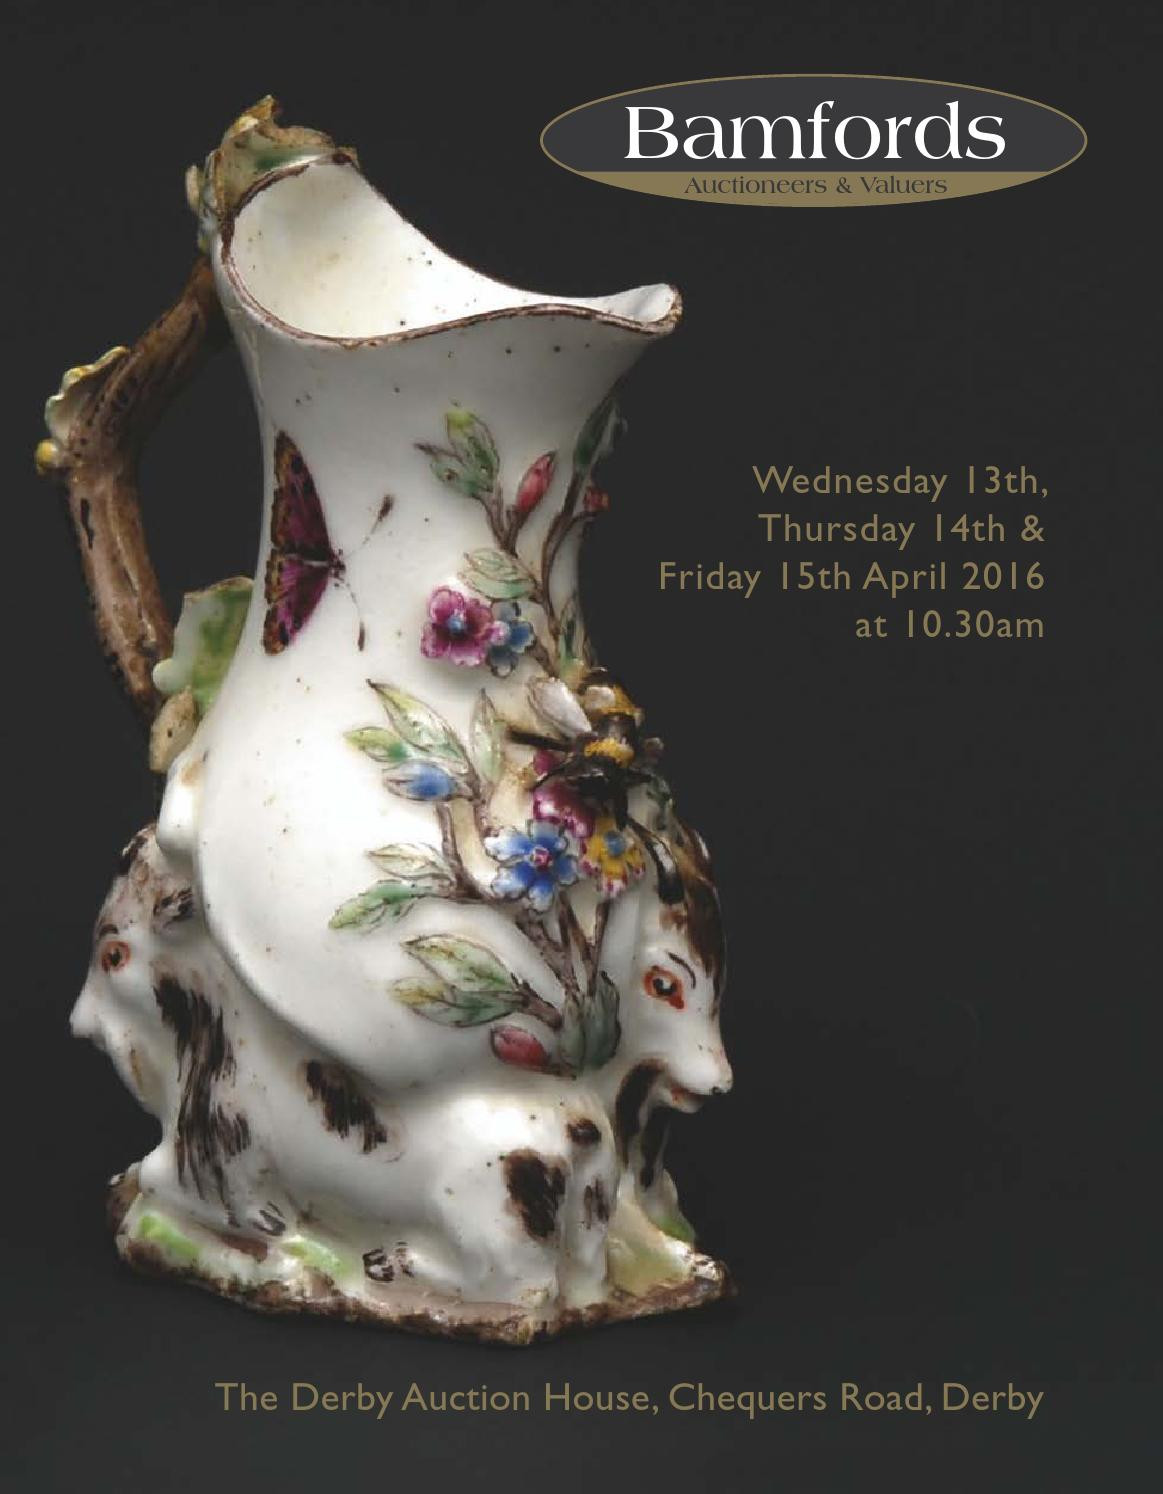 satsuma vase made in china of bamfords auctioneers by jamm design ltd issuu in page 1